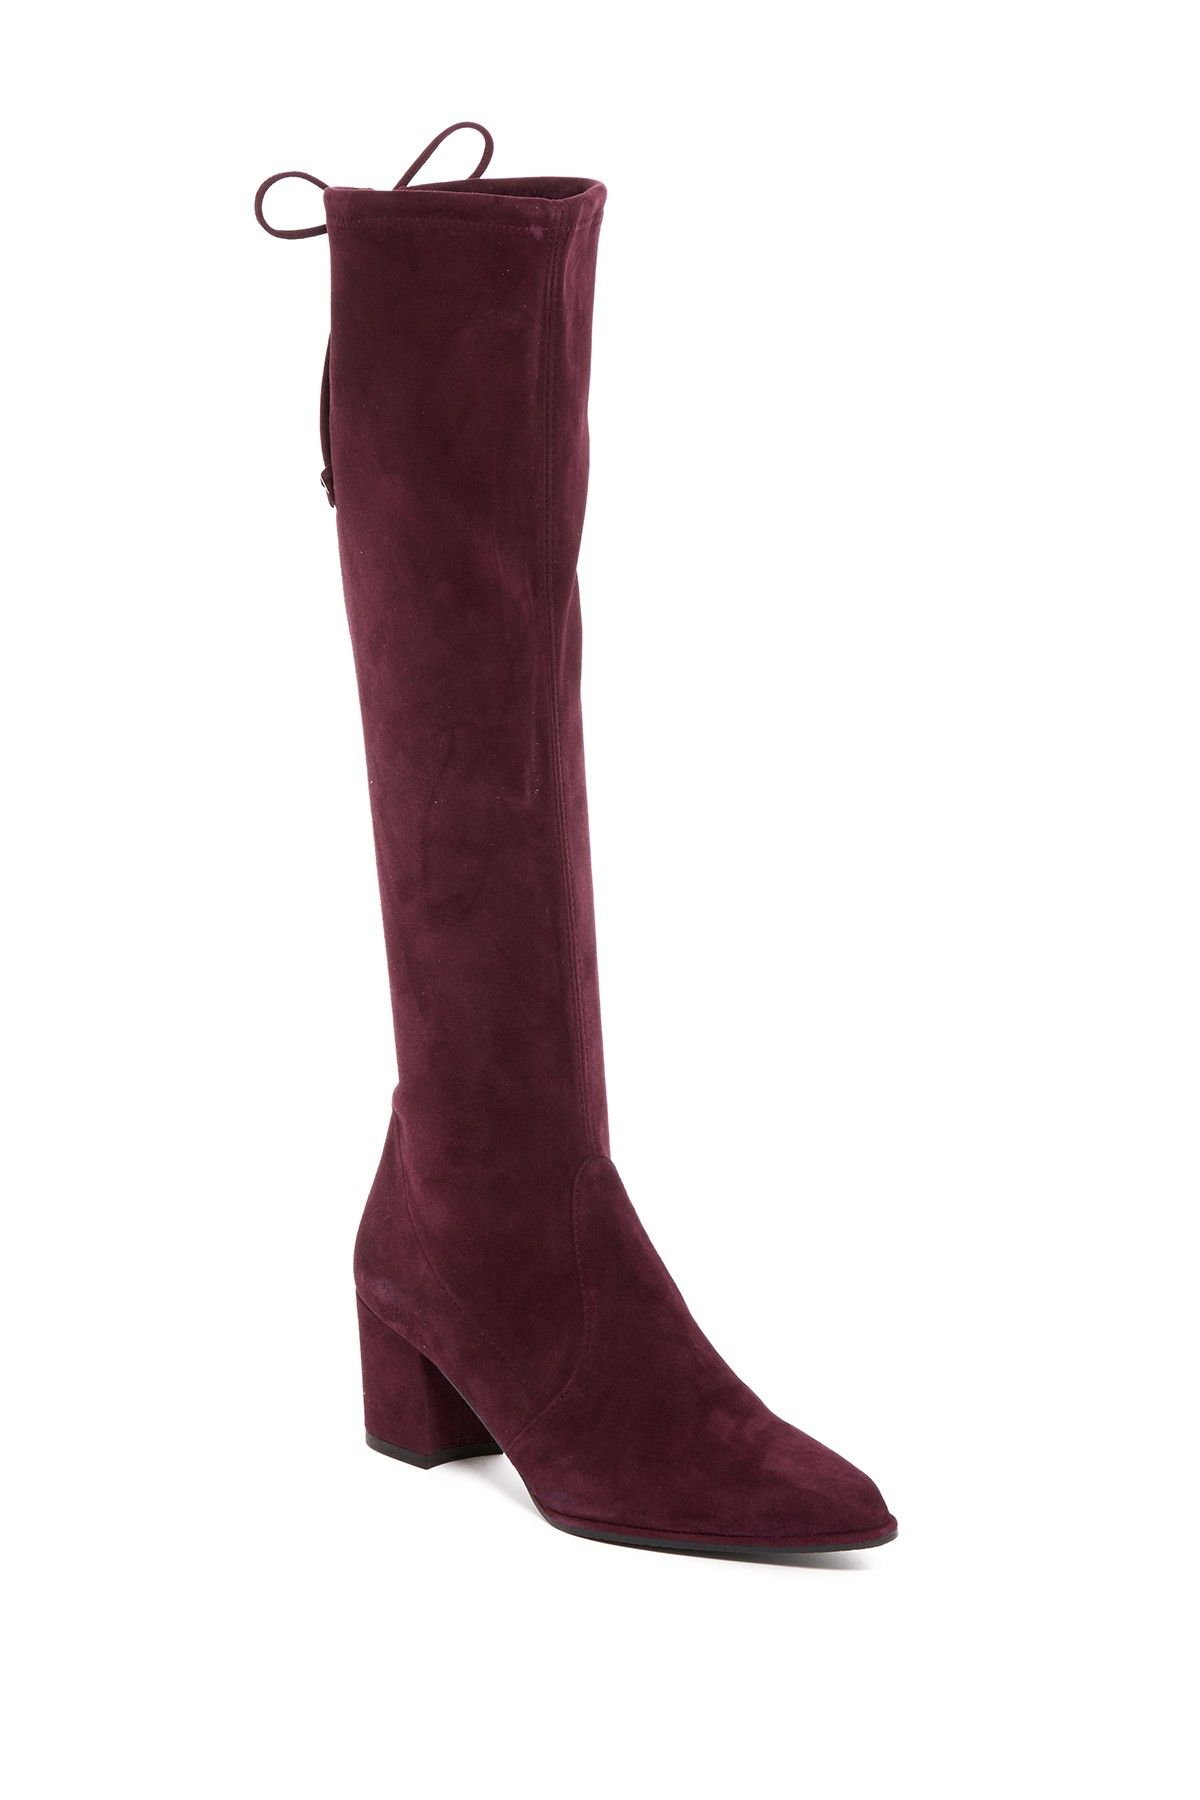 ff5bff48768 Cleveland Knee High Boot by Stuart Weitzman on  nordstrom rack